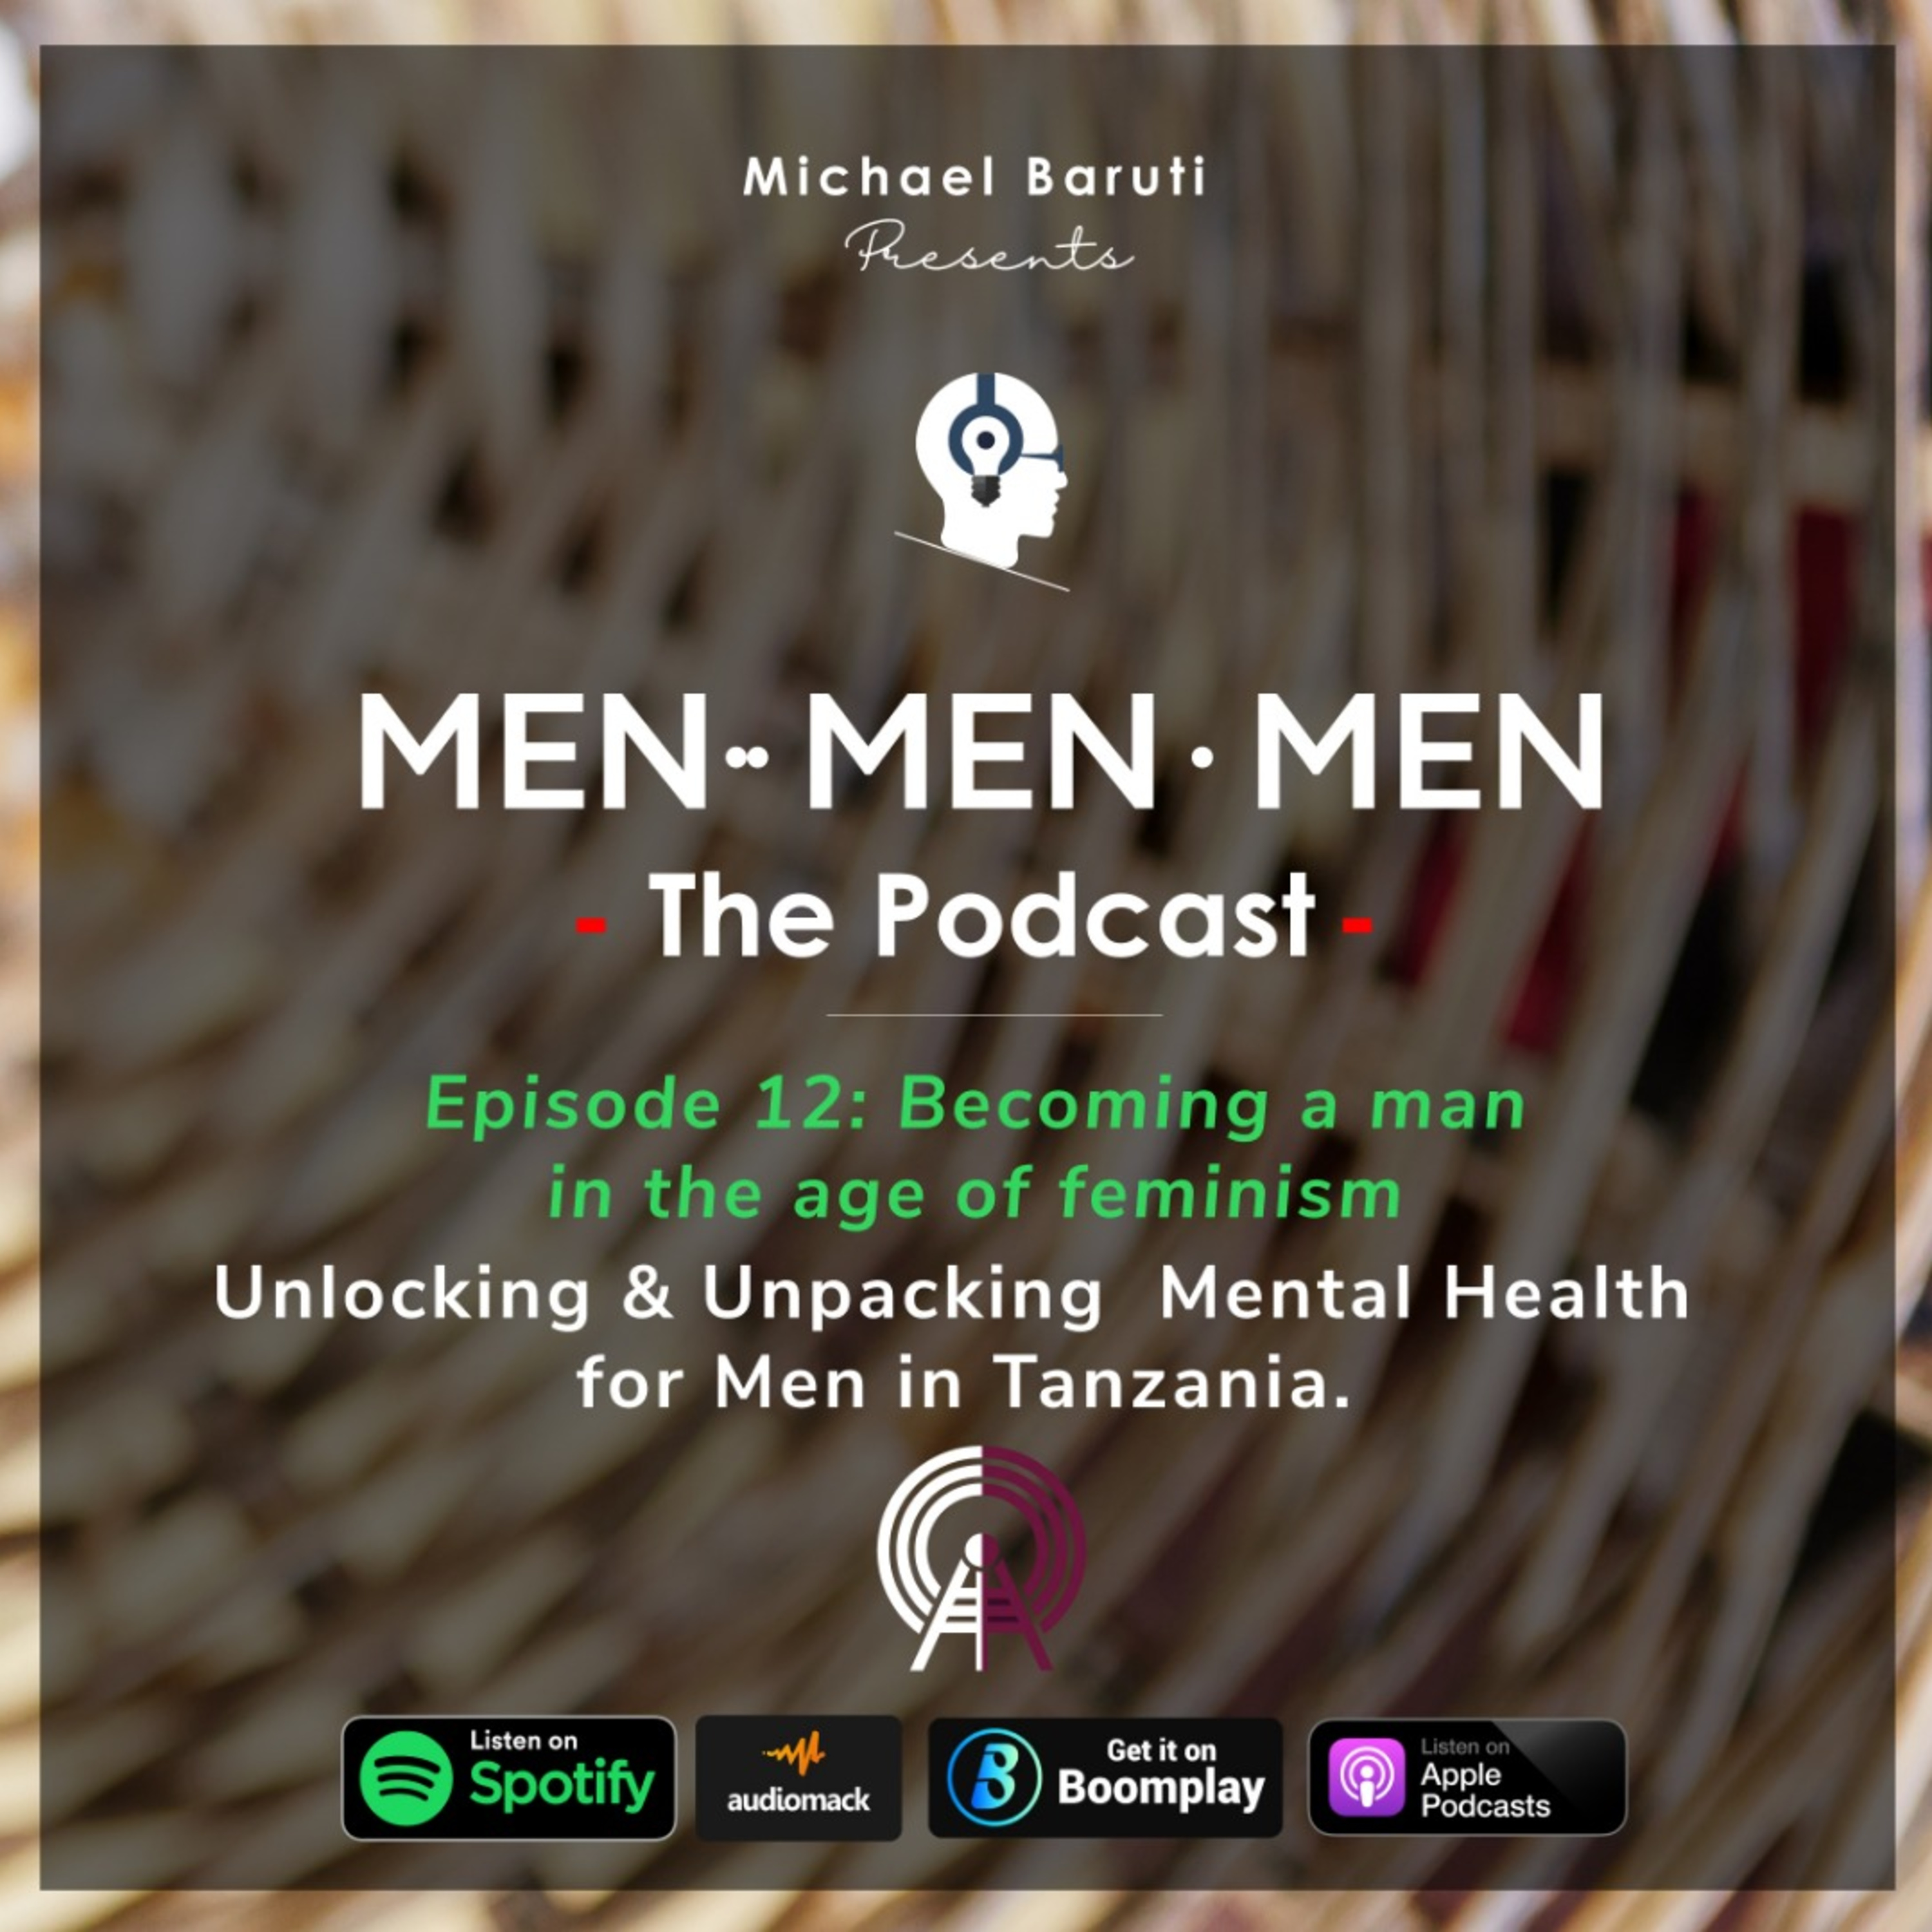 Men The Podcast - Ep 12 - Becoming a Man in the age of Feminism